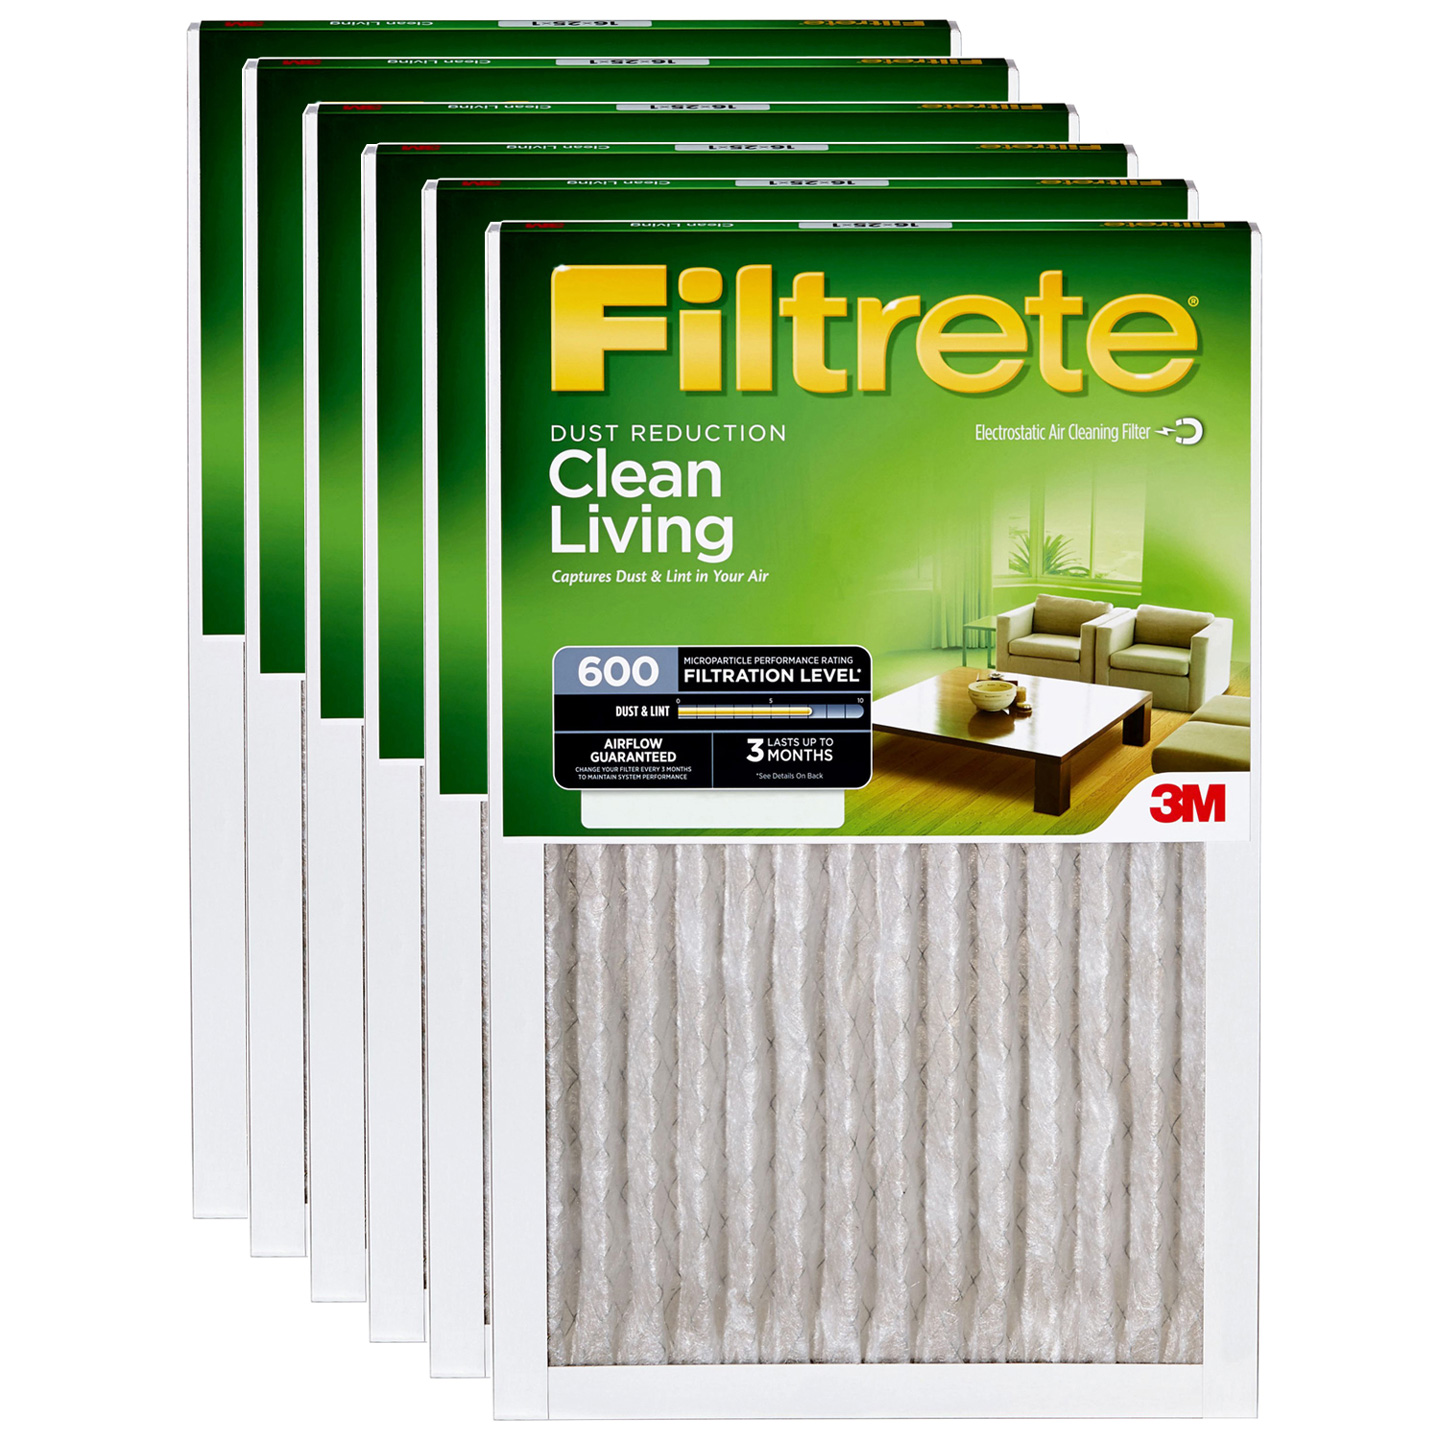 Filtrete 600 Dust Reduction Clean Living Filter - 14x20x1 (6-Pack) FILTRETE_DUST_14x20x1_6_PACK